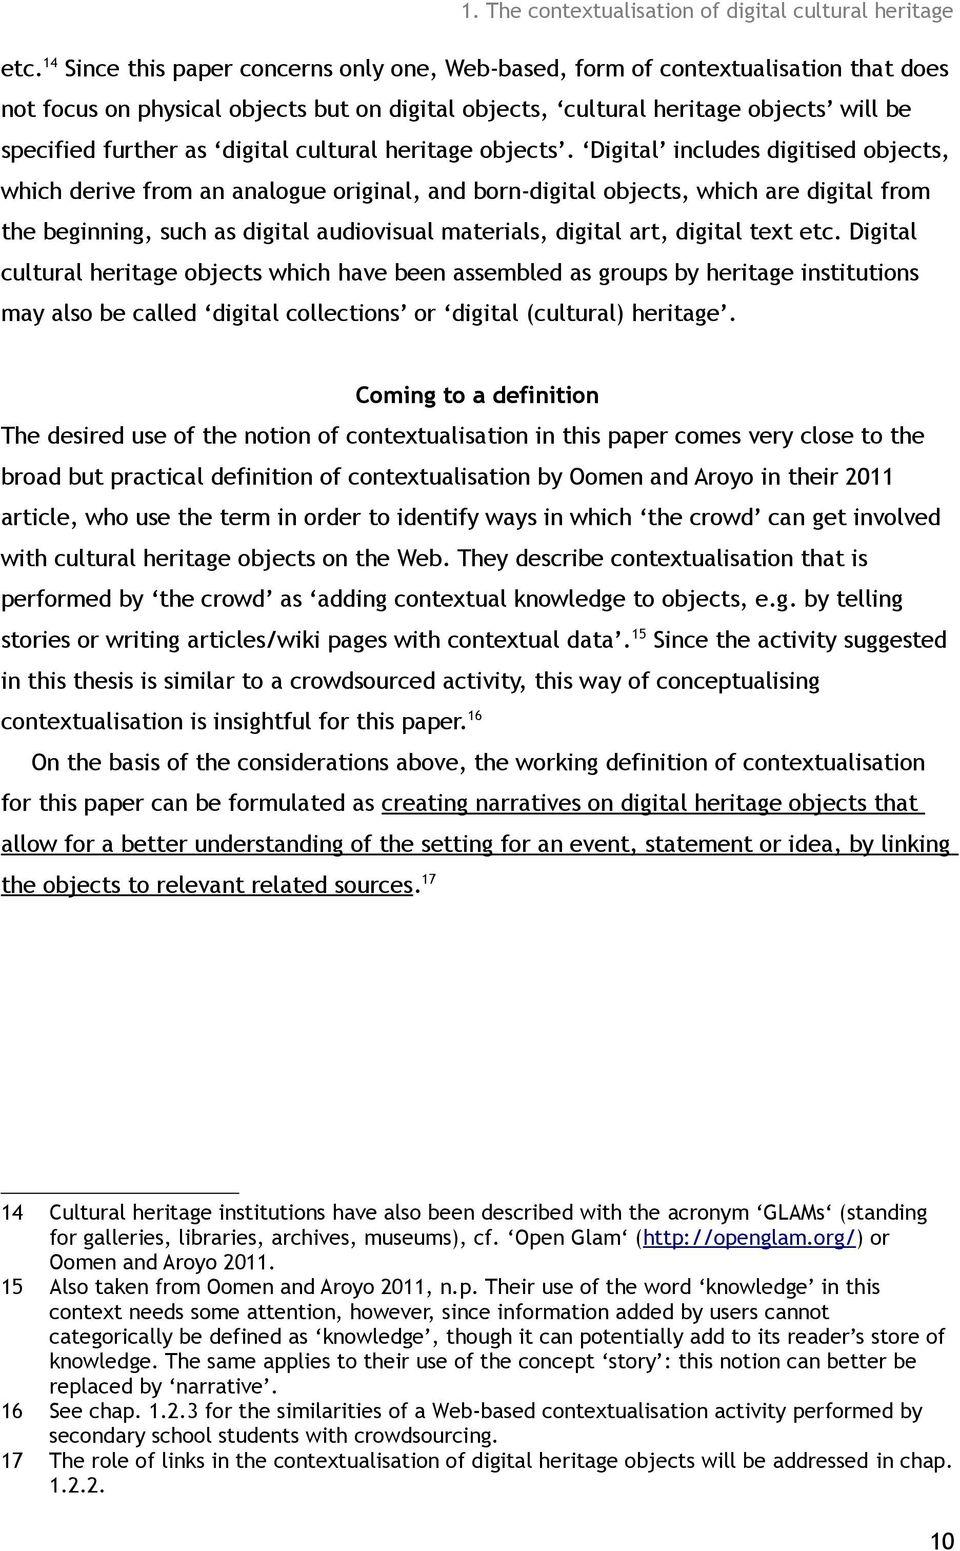 digital cultural heritage objects.